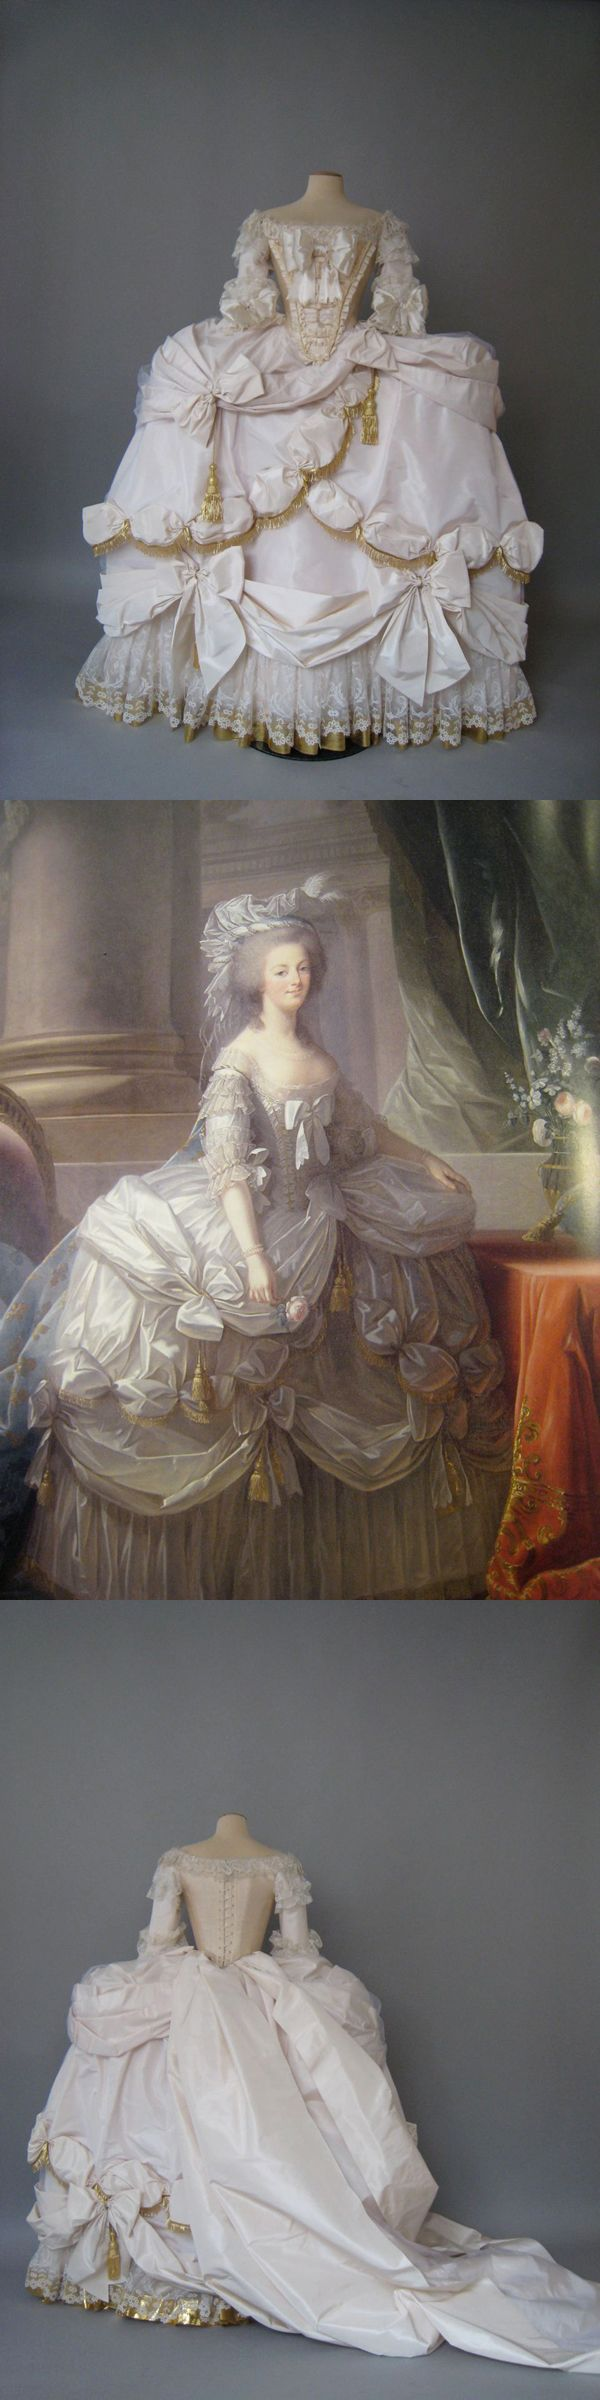 Recreation of Marie Antoinette's court gown (Robe de cour) as painted by Vigee LeBrun in 1779. By Atelier Caraco Canezou for an exhibition in Japan